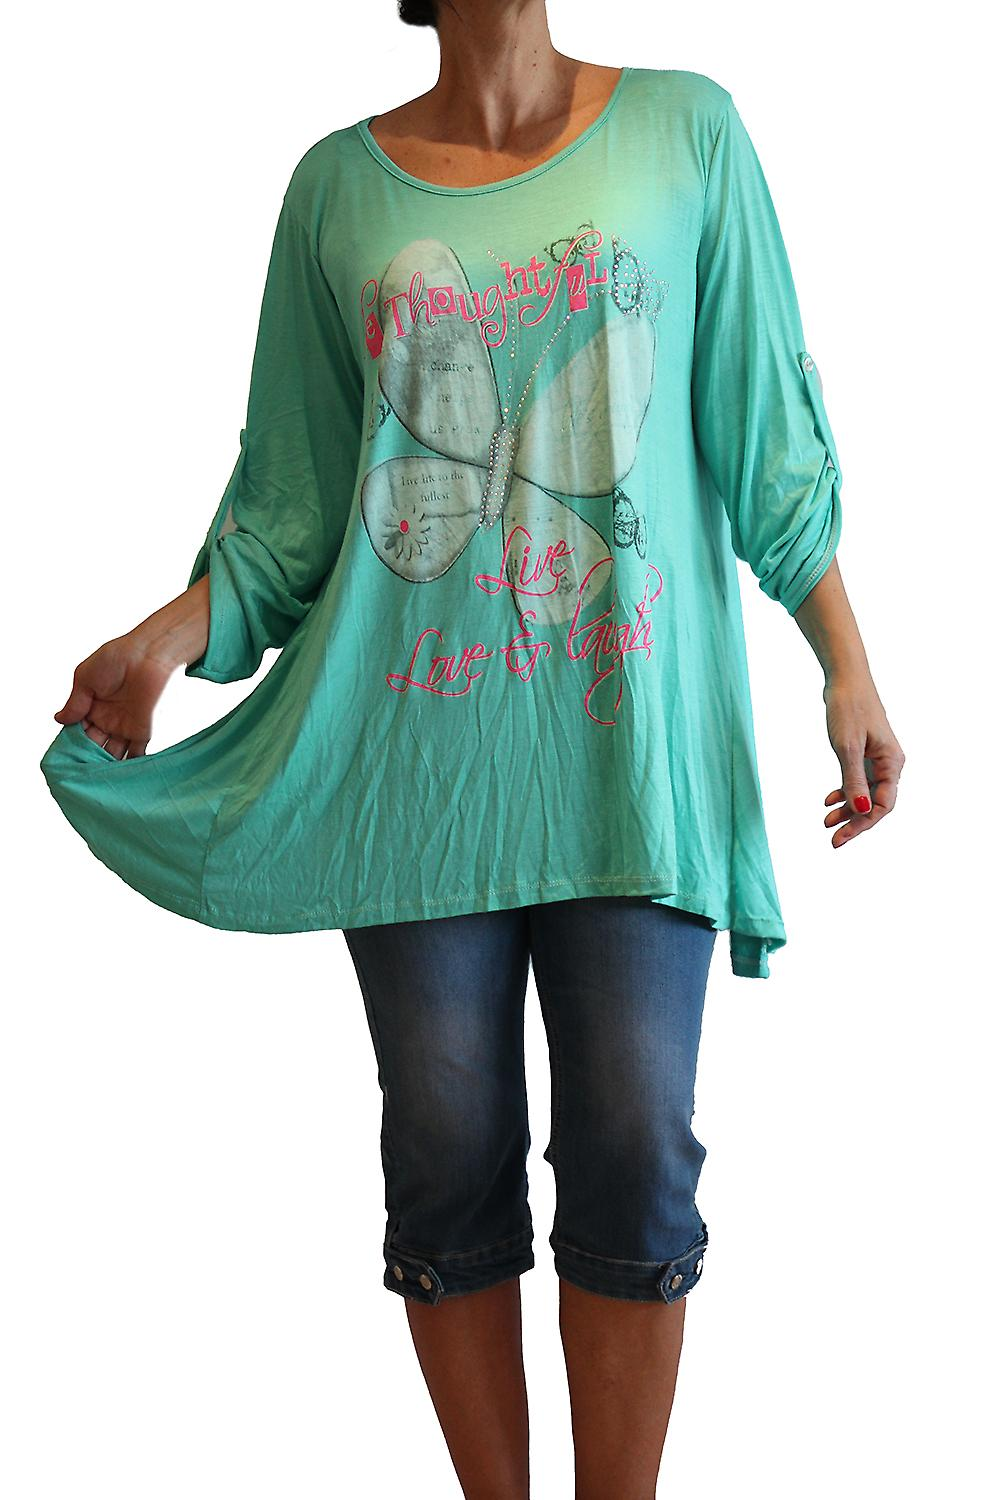 Waooh - Fashion - Butterfly Print Tunic long sleeves and rhinestone